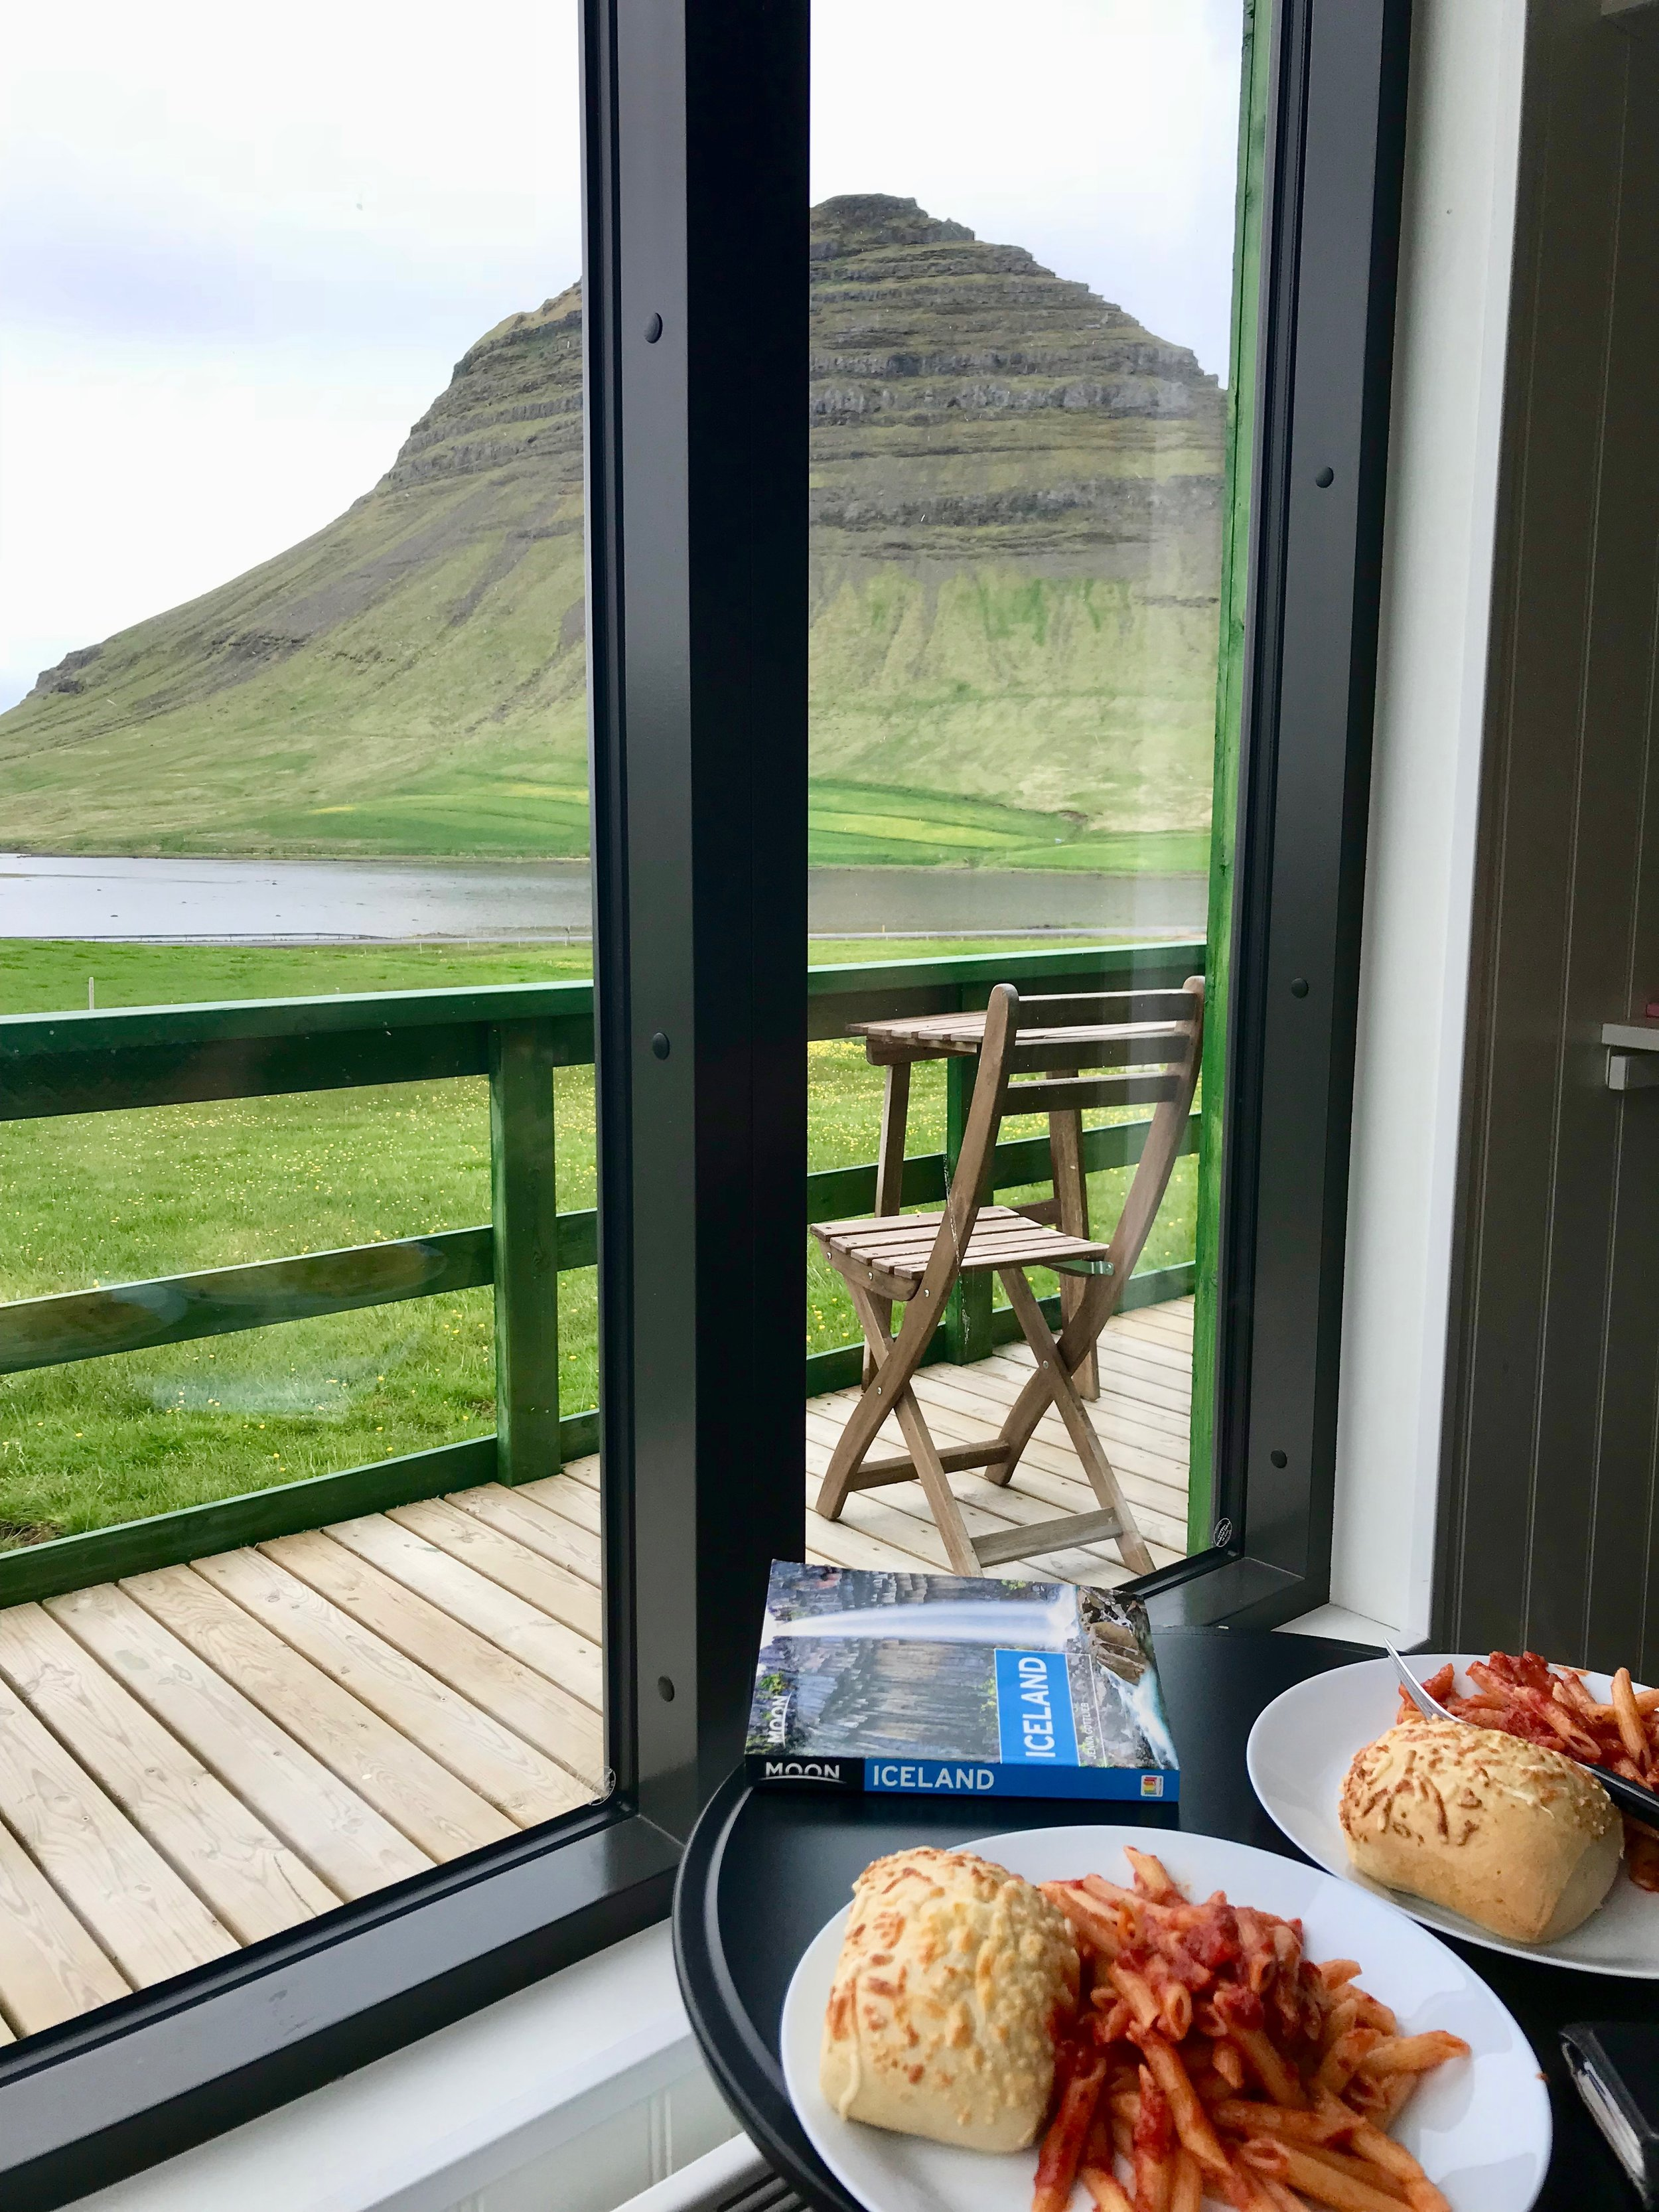 Dinner at our Airbnb overlooking Kirkjufell Mountain